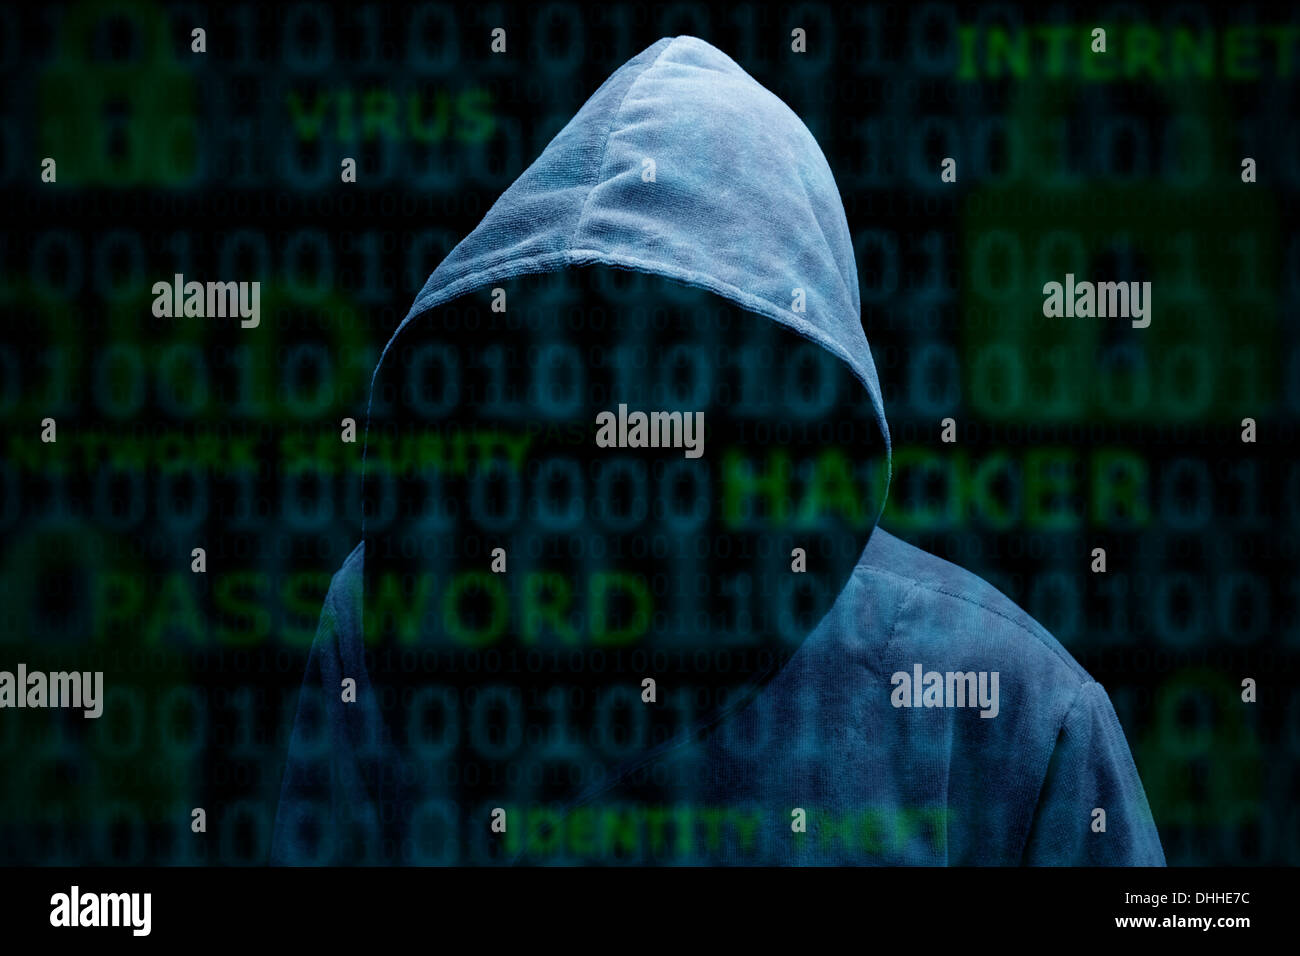 Hooded silhouette of a hacker - Stock Image